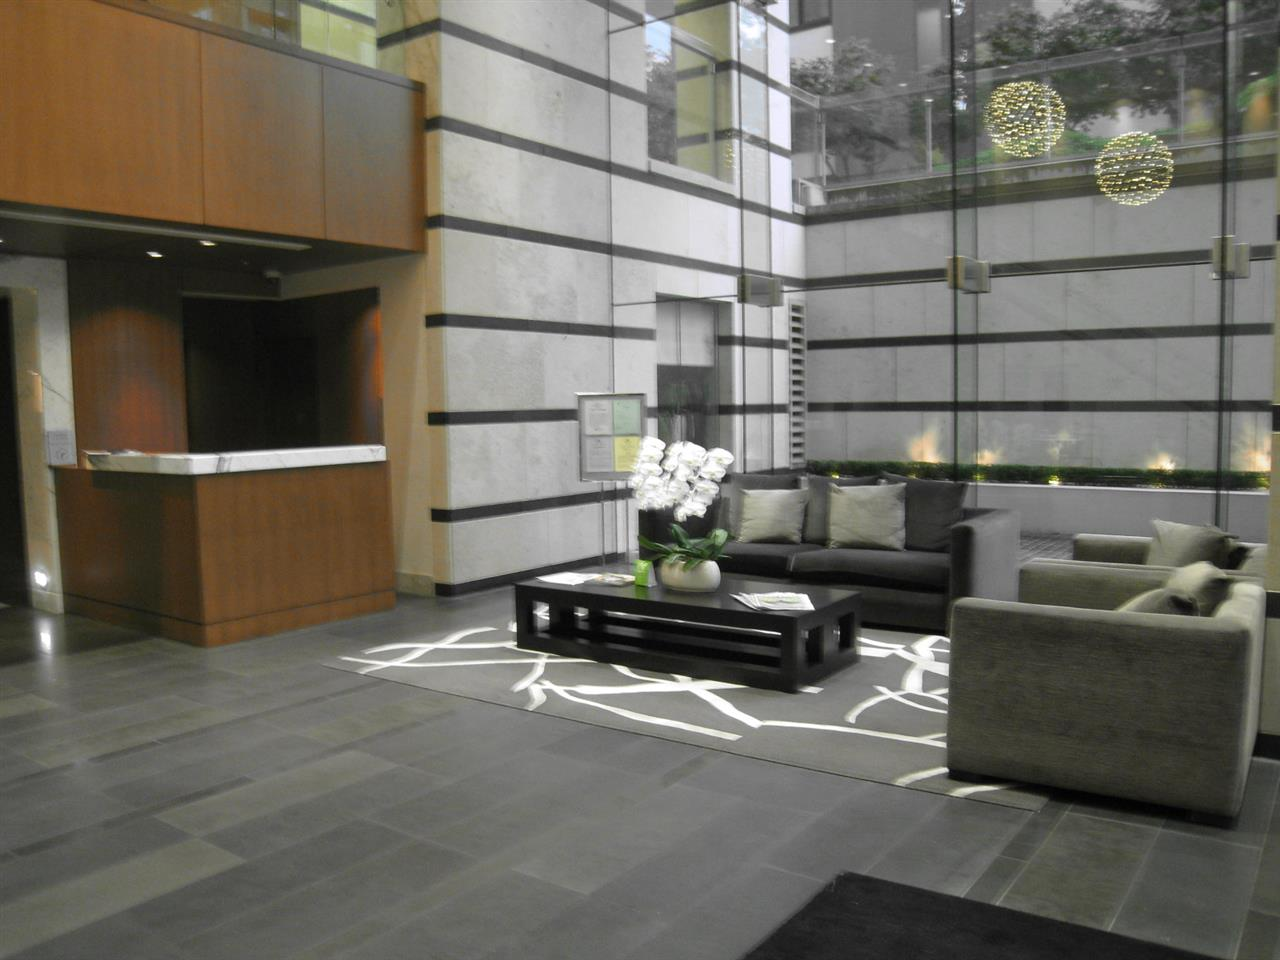 Condo Apartment at 909 1028 BARCLAY STREET, Unit 909, Vancouver West, British Columbia. Image 2